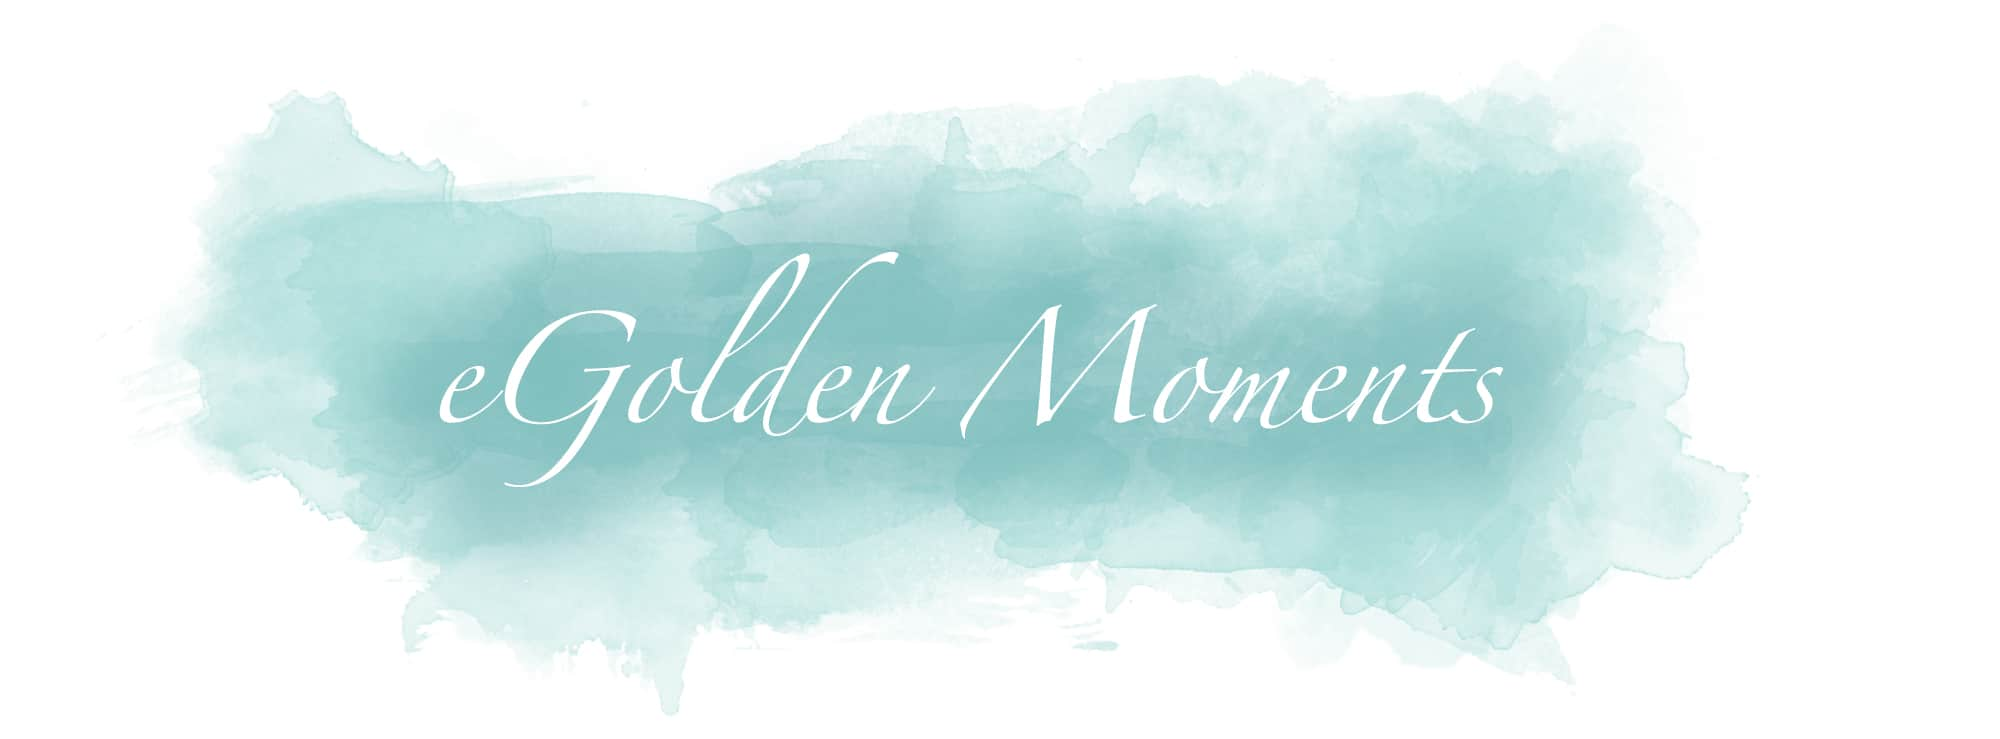 eGolden Moments